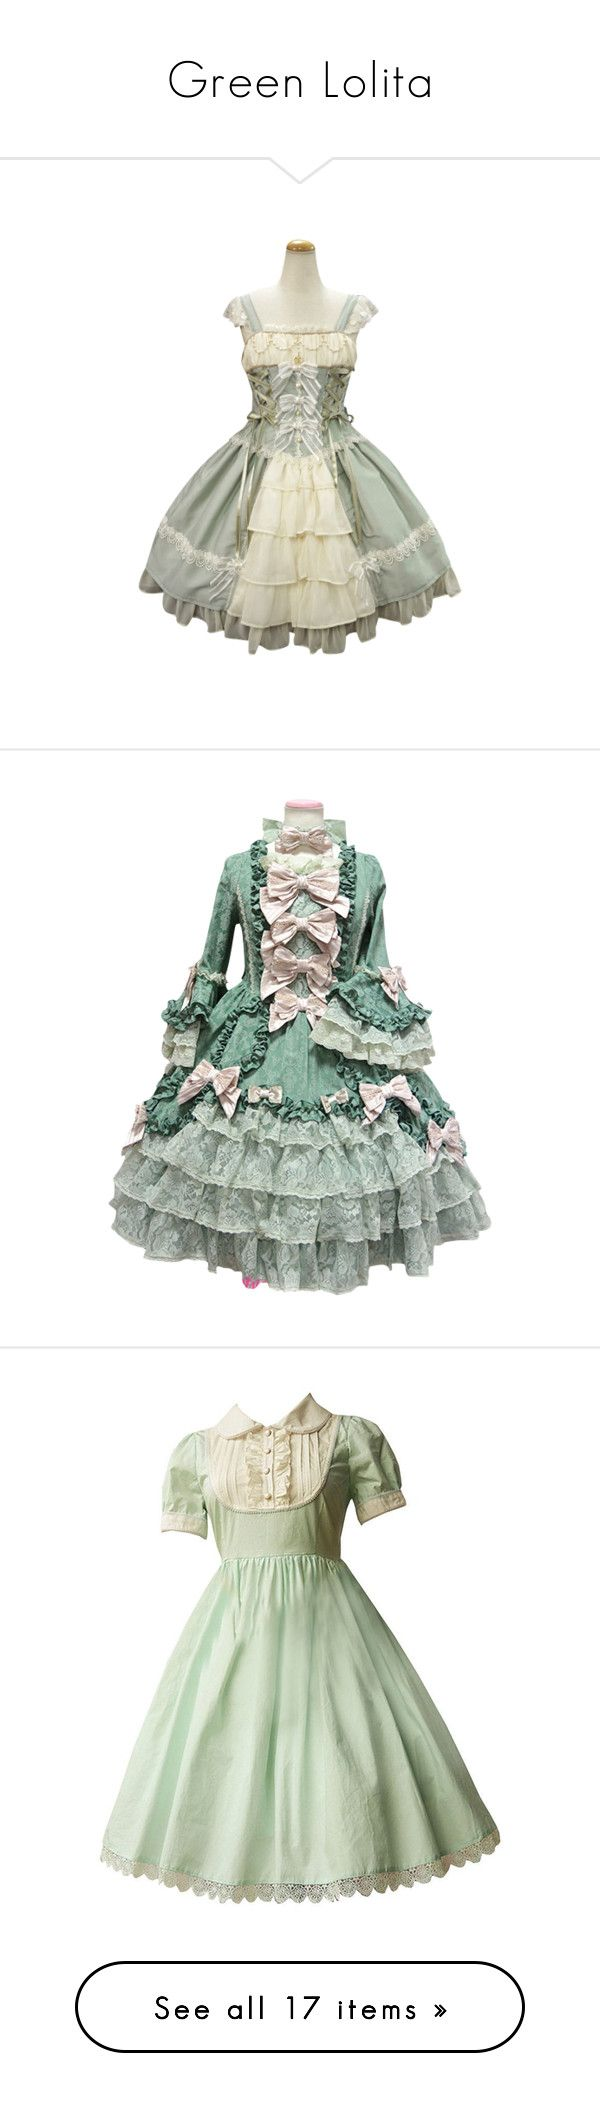 """Green Lolita"" by sw-13 ❤ liked on Polyvore featuring dresses, lolita, jsk, op, light green dress, cotton day dresses, cotton dresses, green cotton dress, green dress and christmas"